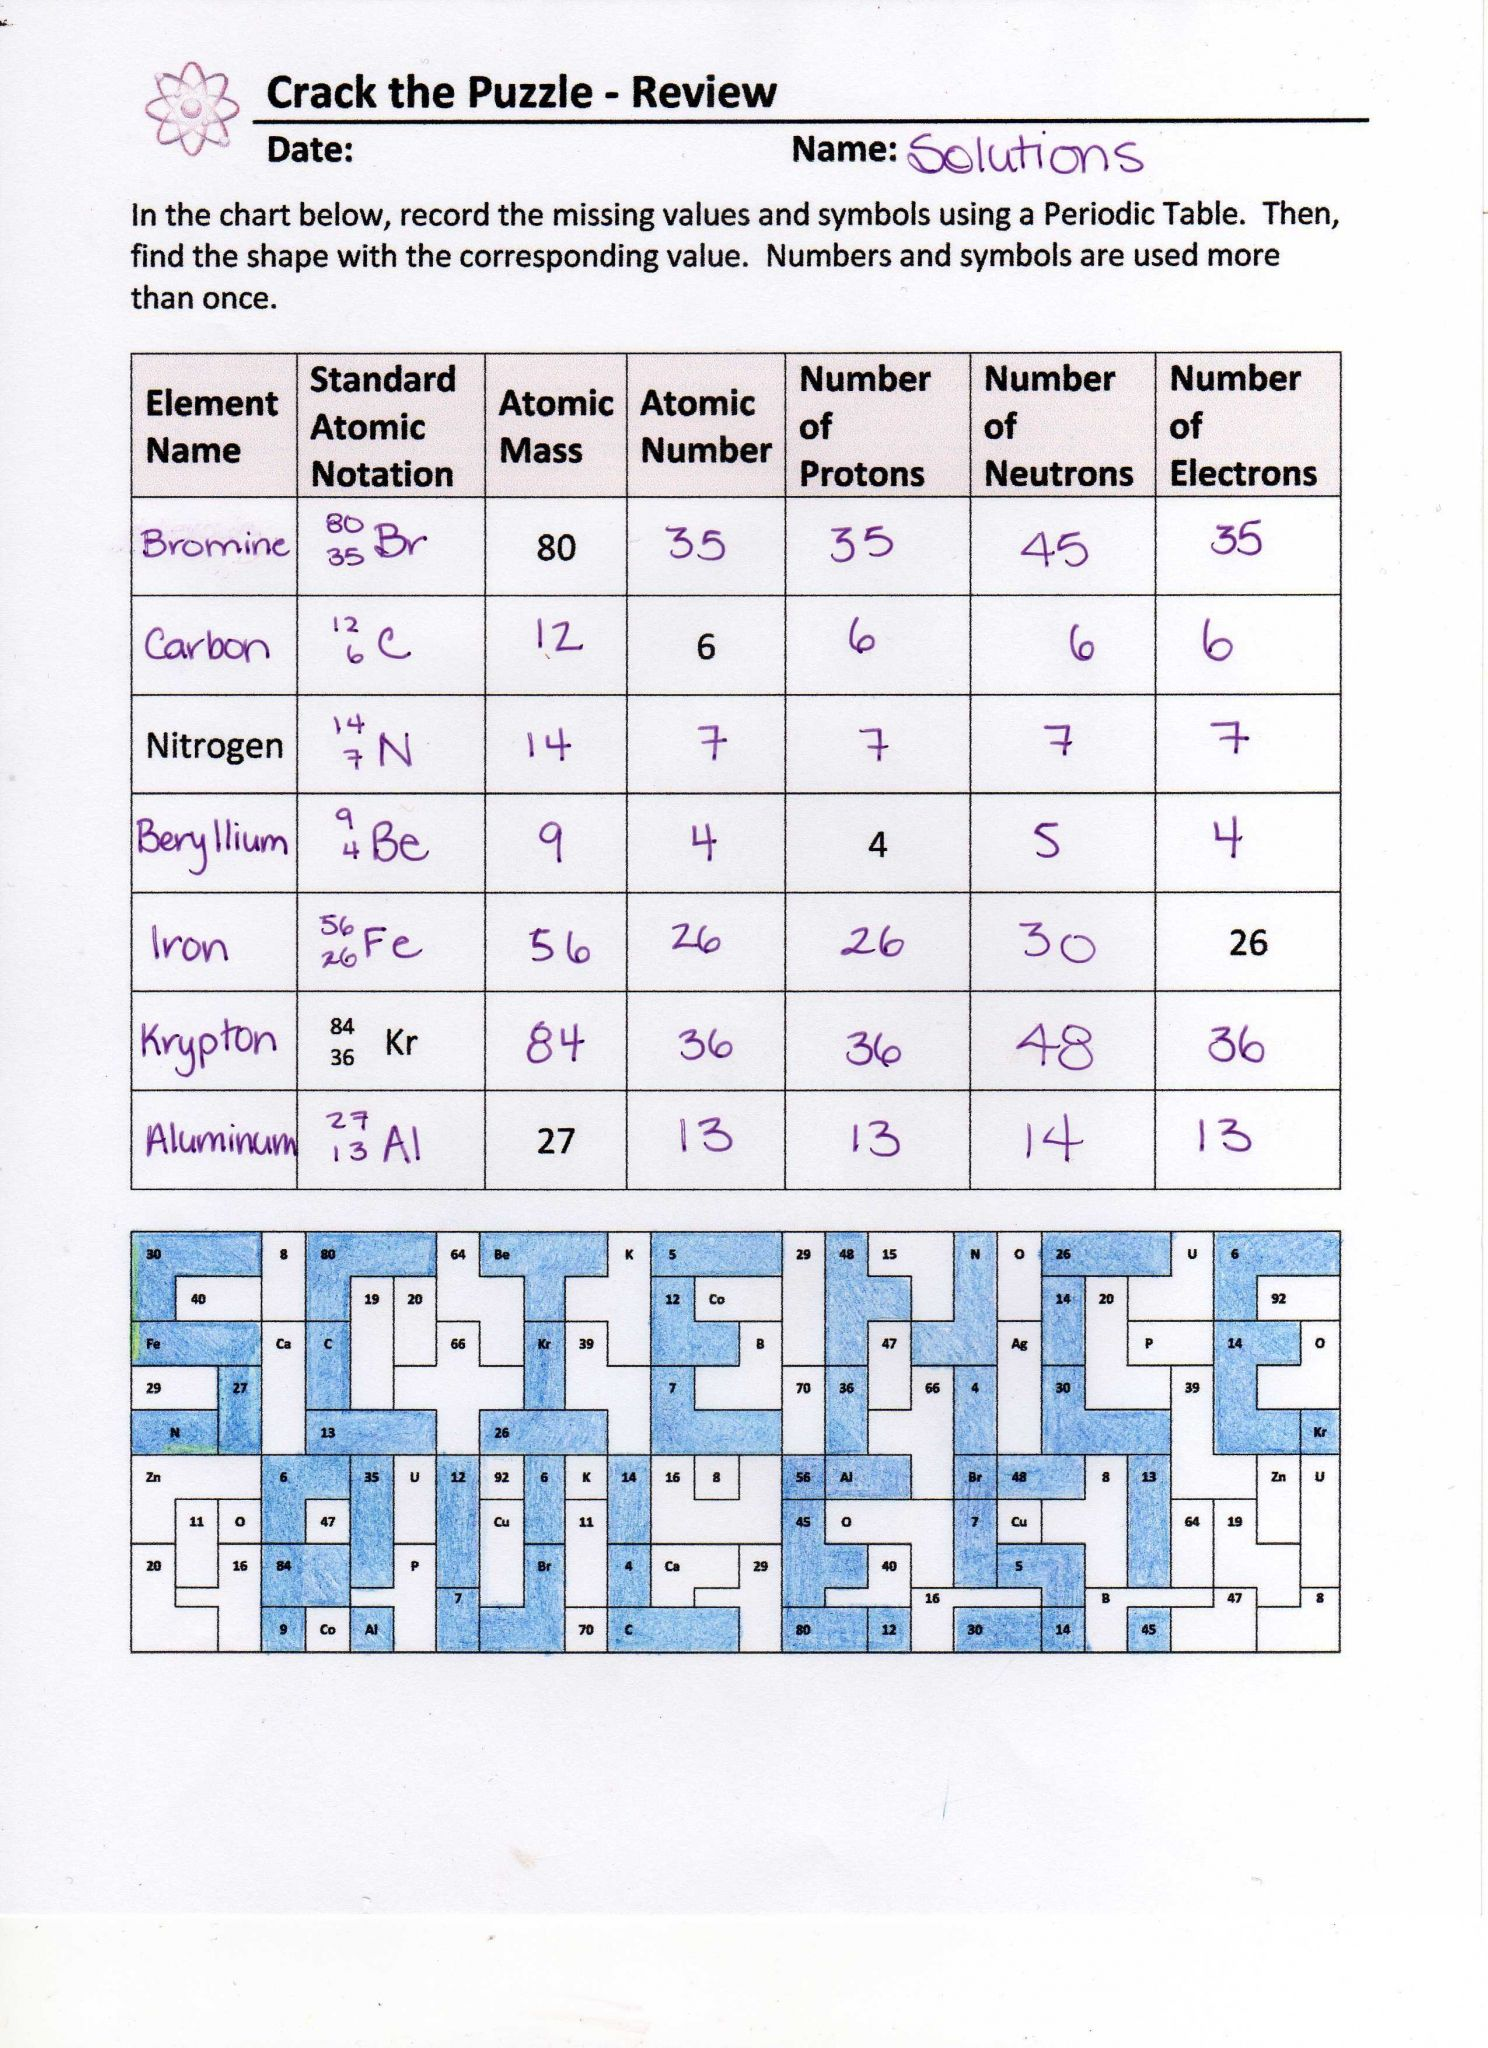 Periodic Table Puzzle Worksheet Answers Along with Tabla Peridica Del Vino Periodic Table Of Wine How the Table Works